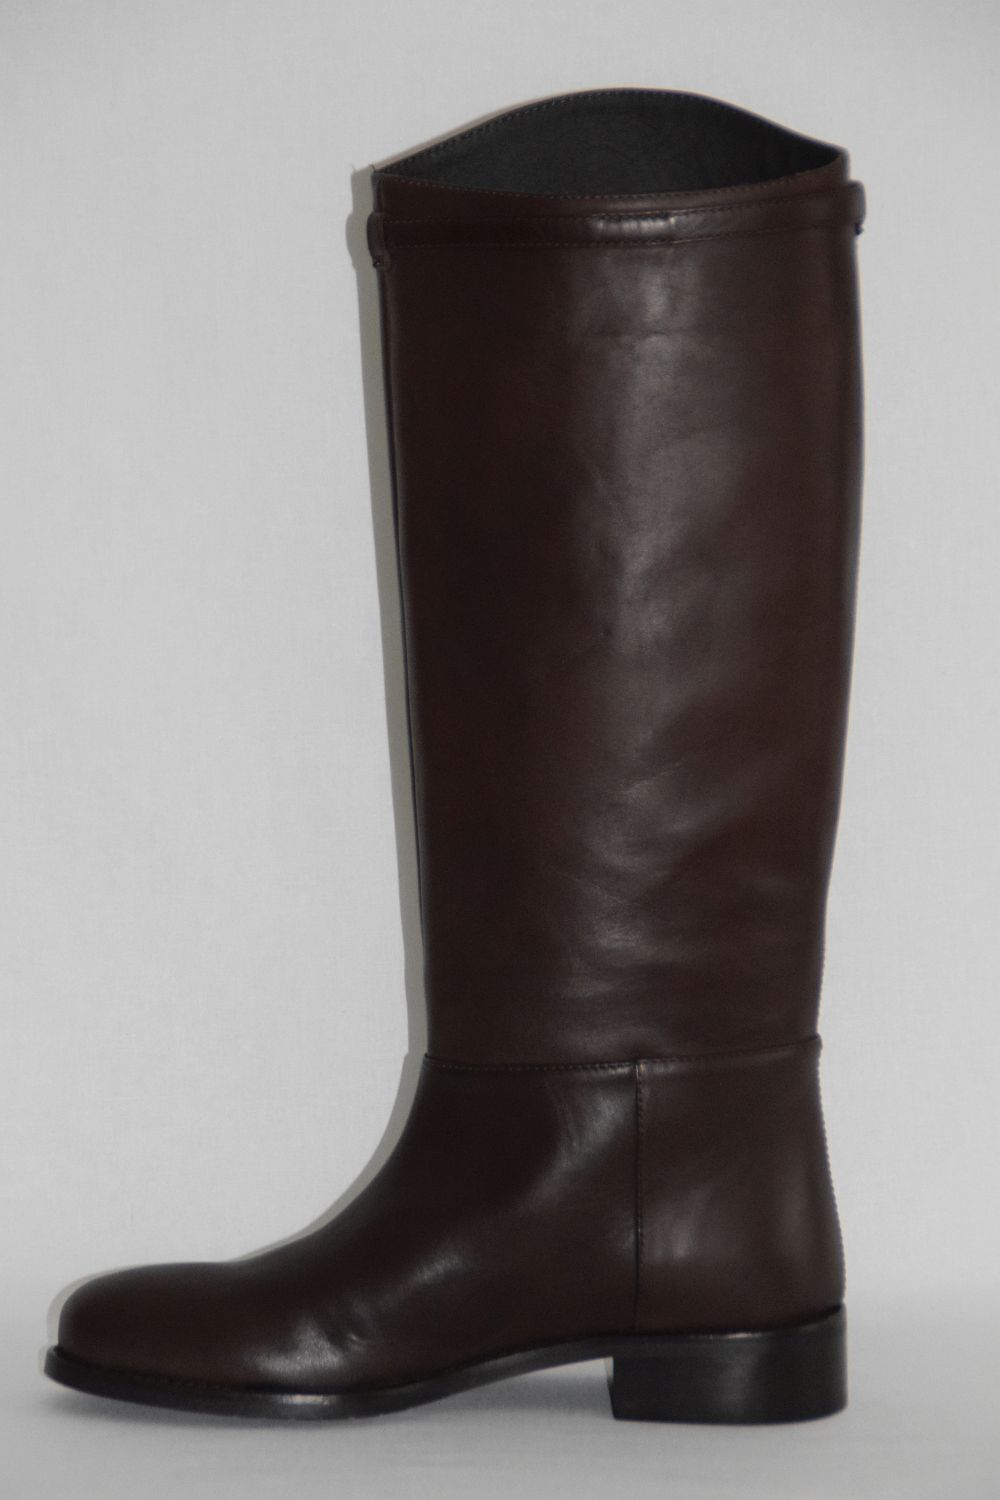 Hugo Boss señora botas, //us 7, PVP: , Made in Italy